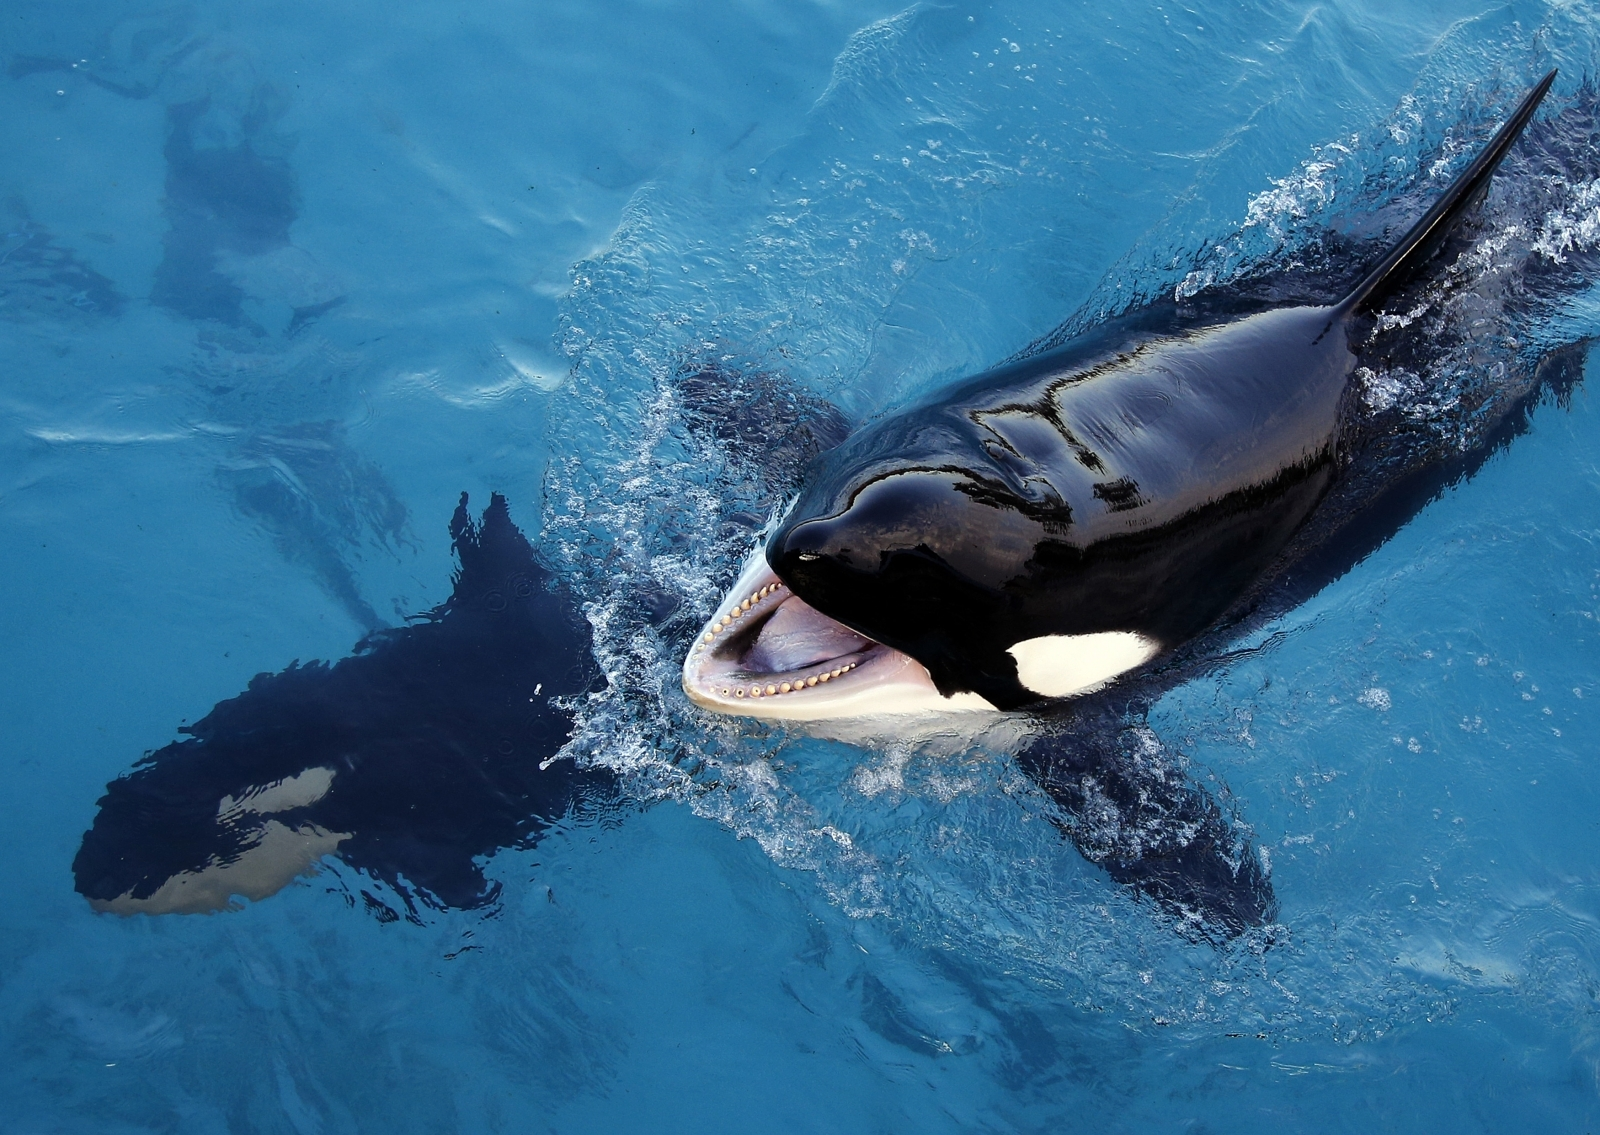 Wikie the killer whale